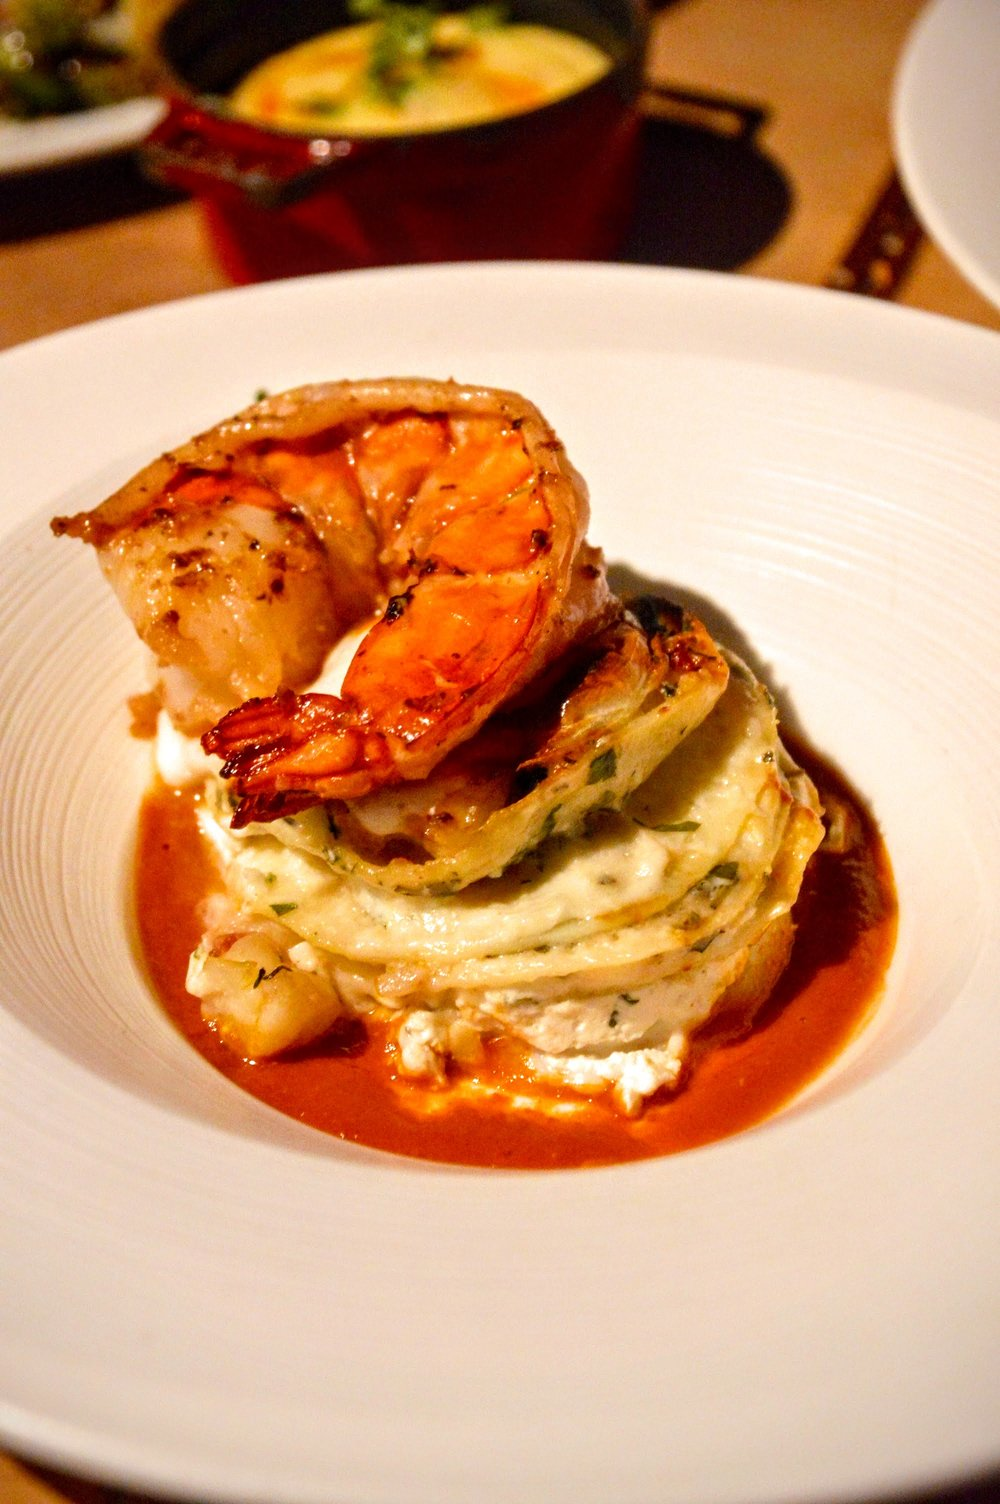 White Lasagna - with Jumbo Prawn, lemon ricotta, & spiced tomato broth